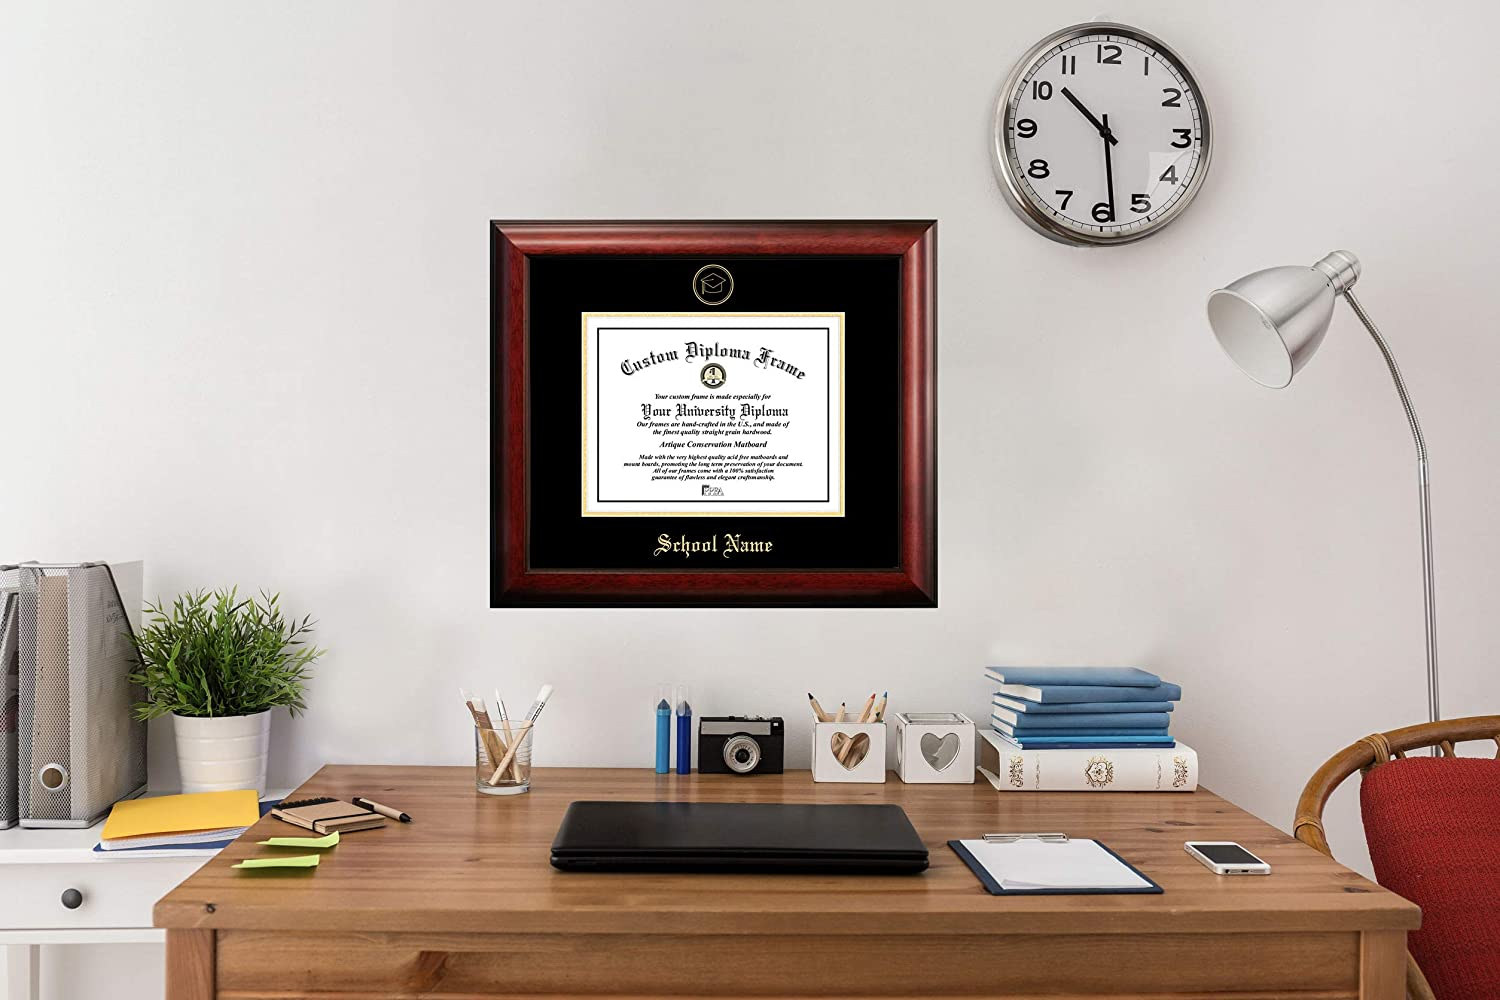 Brown One Size Campus Images NCAA Arizona State Sun Devils Unisex Silver Embossed Diploma Frame Arizona State University 11W x 8.5H Silver Embossed Diploma Frame